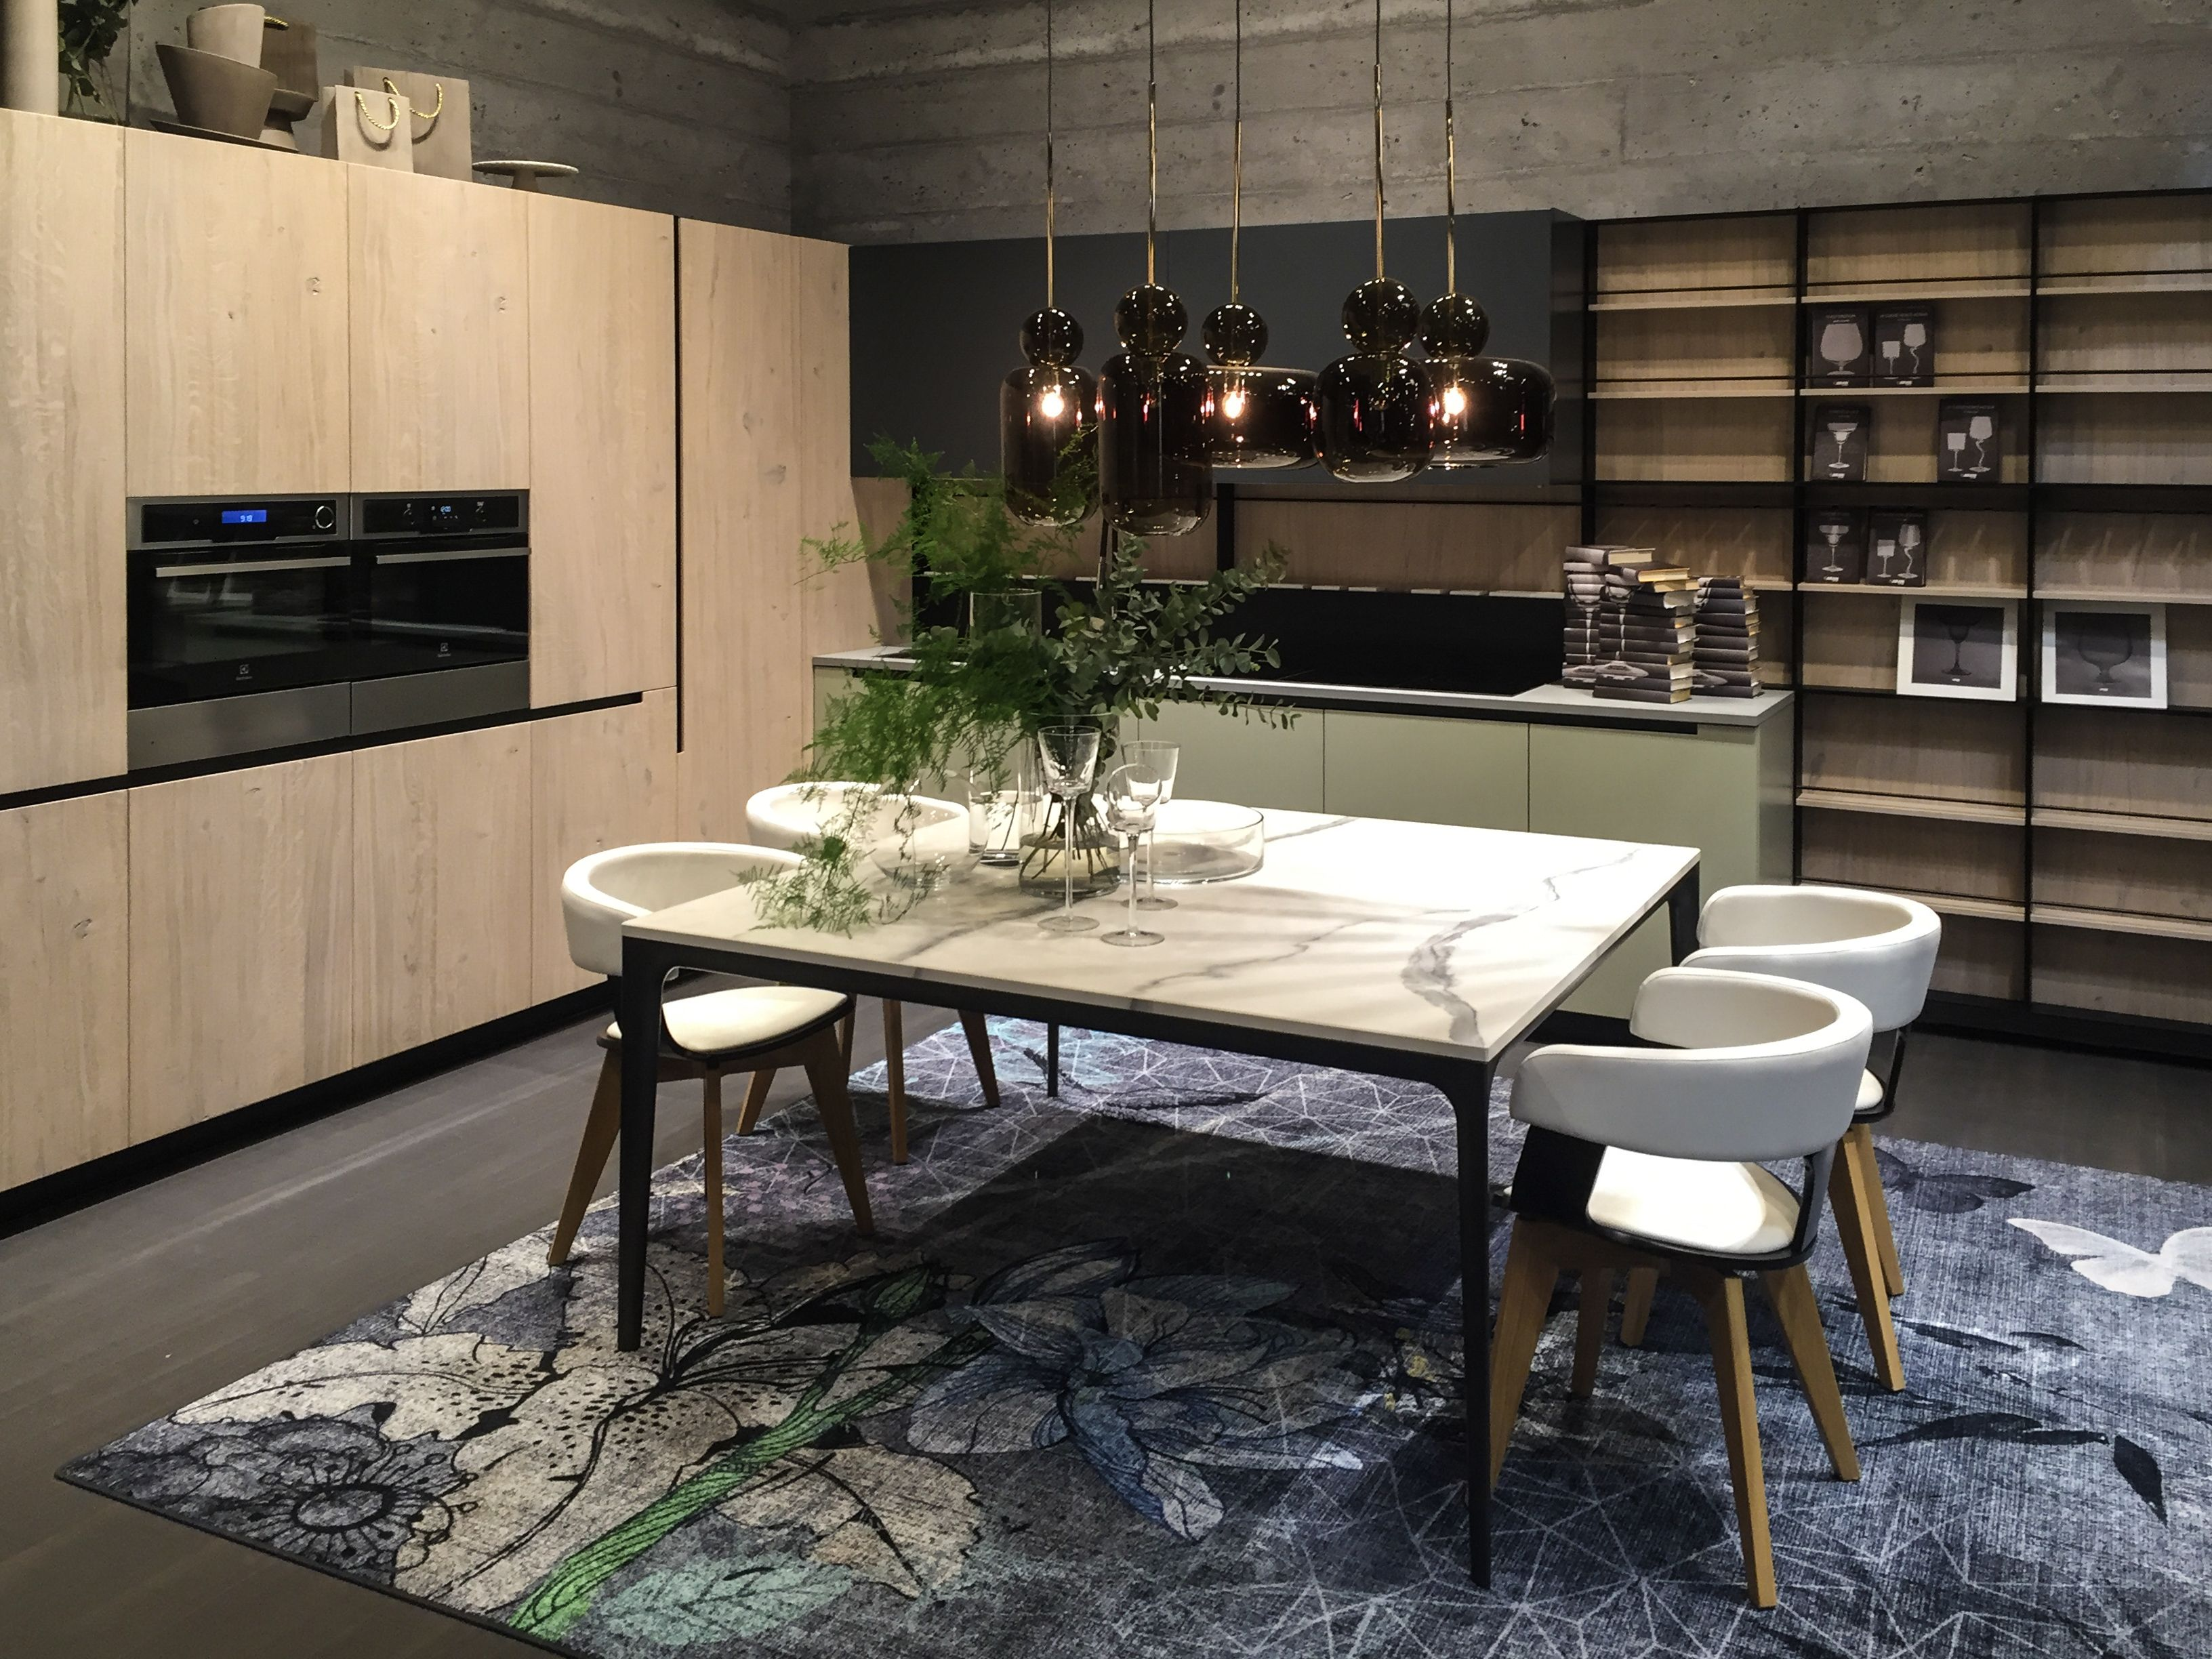 Introducing the new lab 13 kitchen from aran cucine at - Aran cucine lab 13 ...